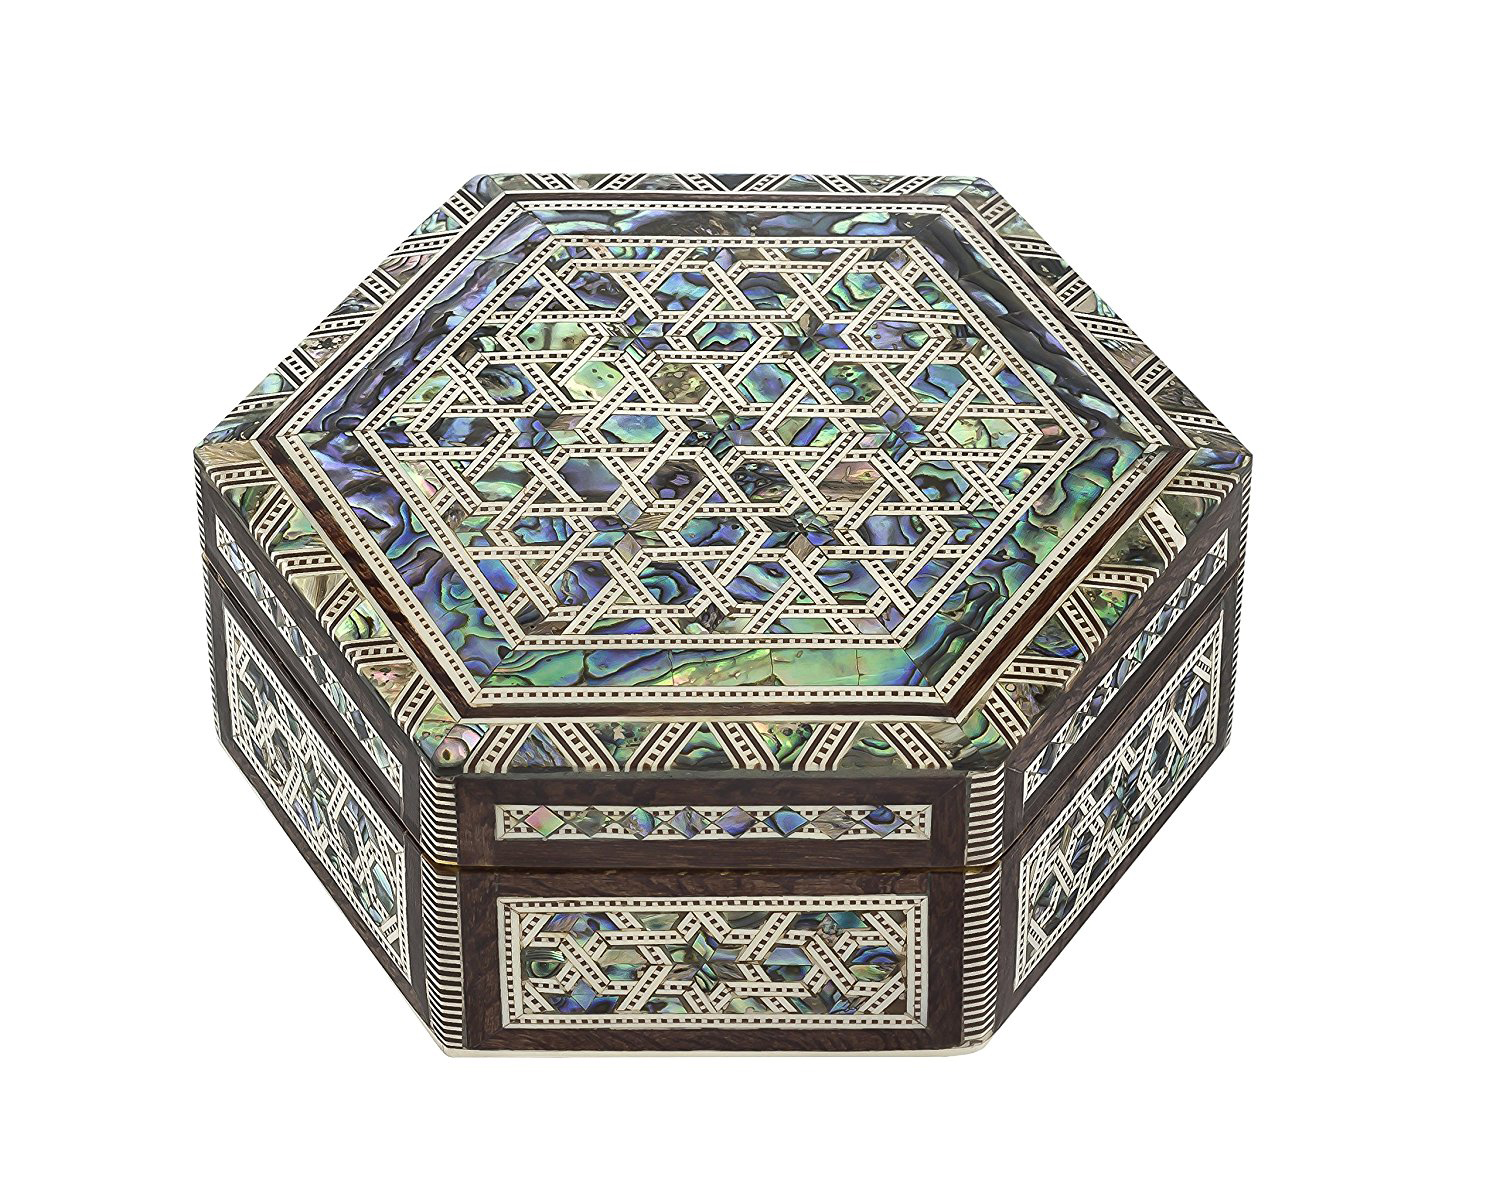 Beautiful Multicolored Stained Glass Jewelry Chest